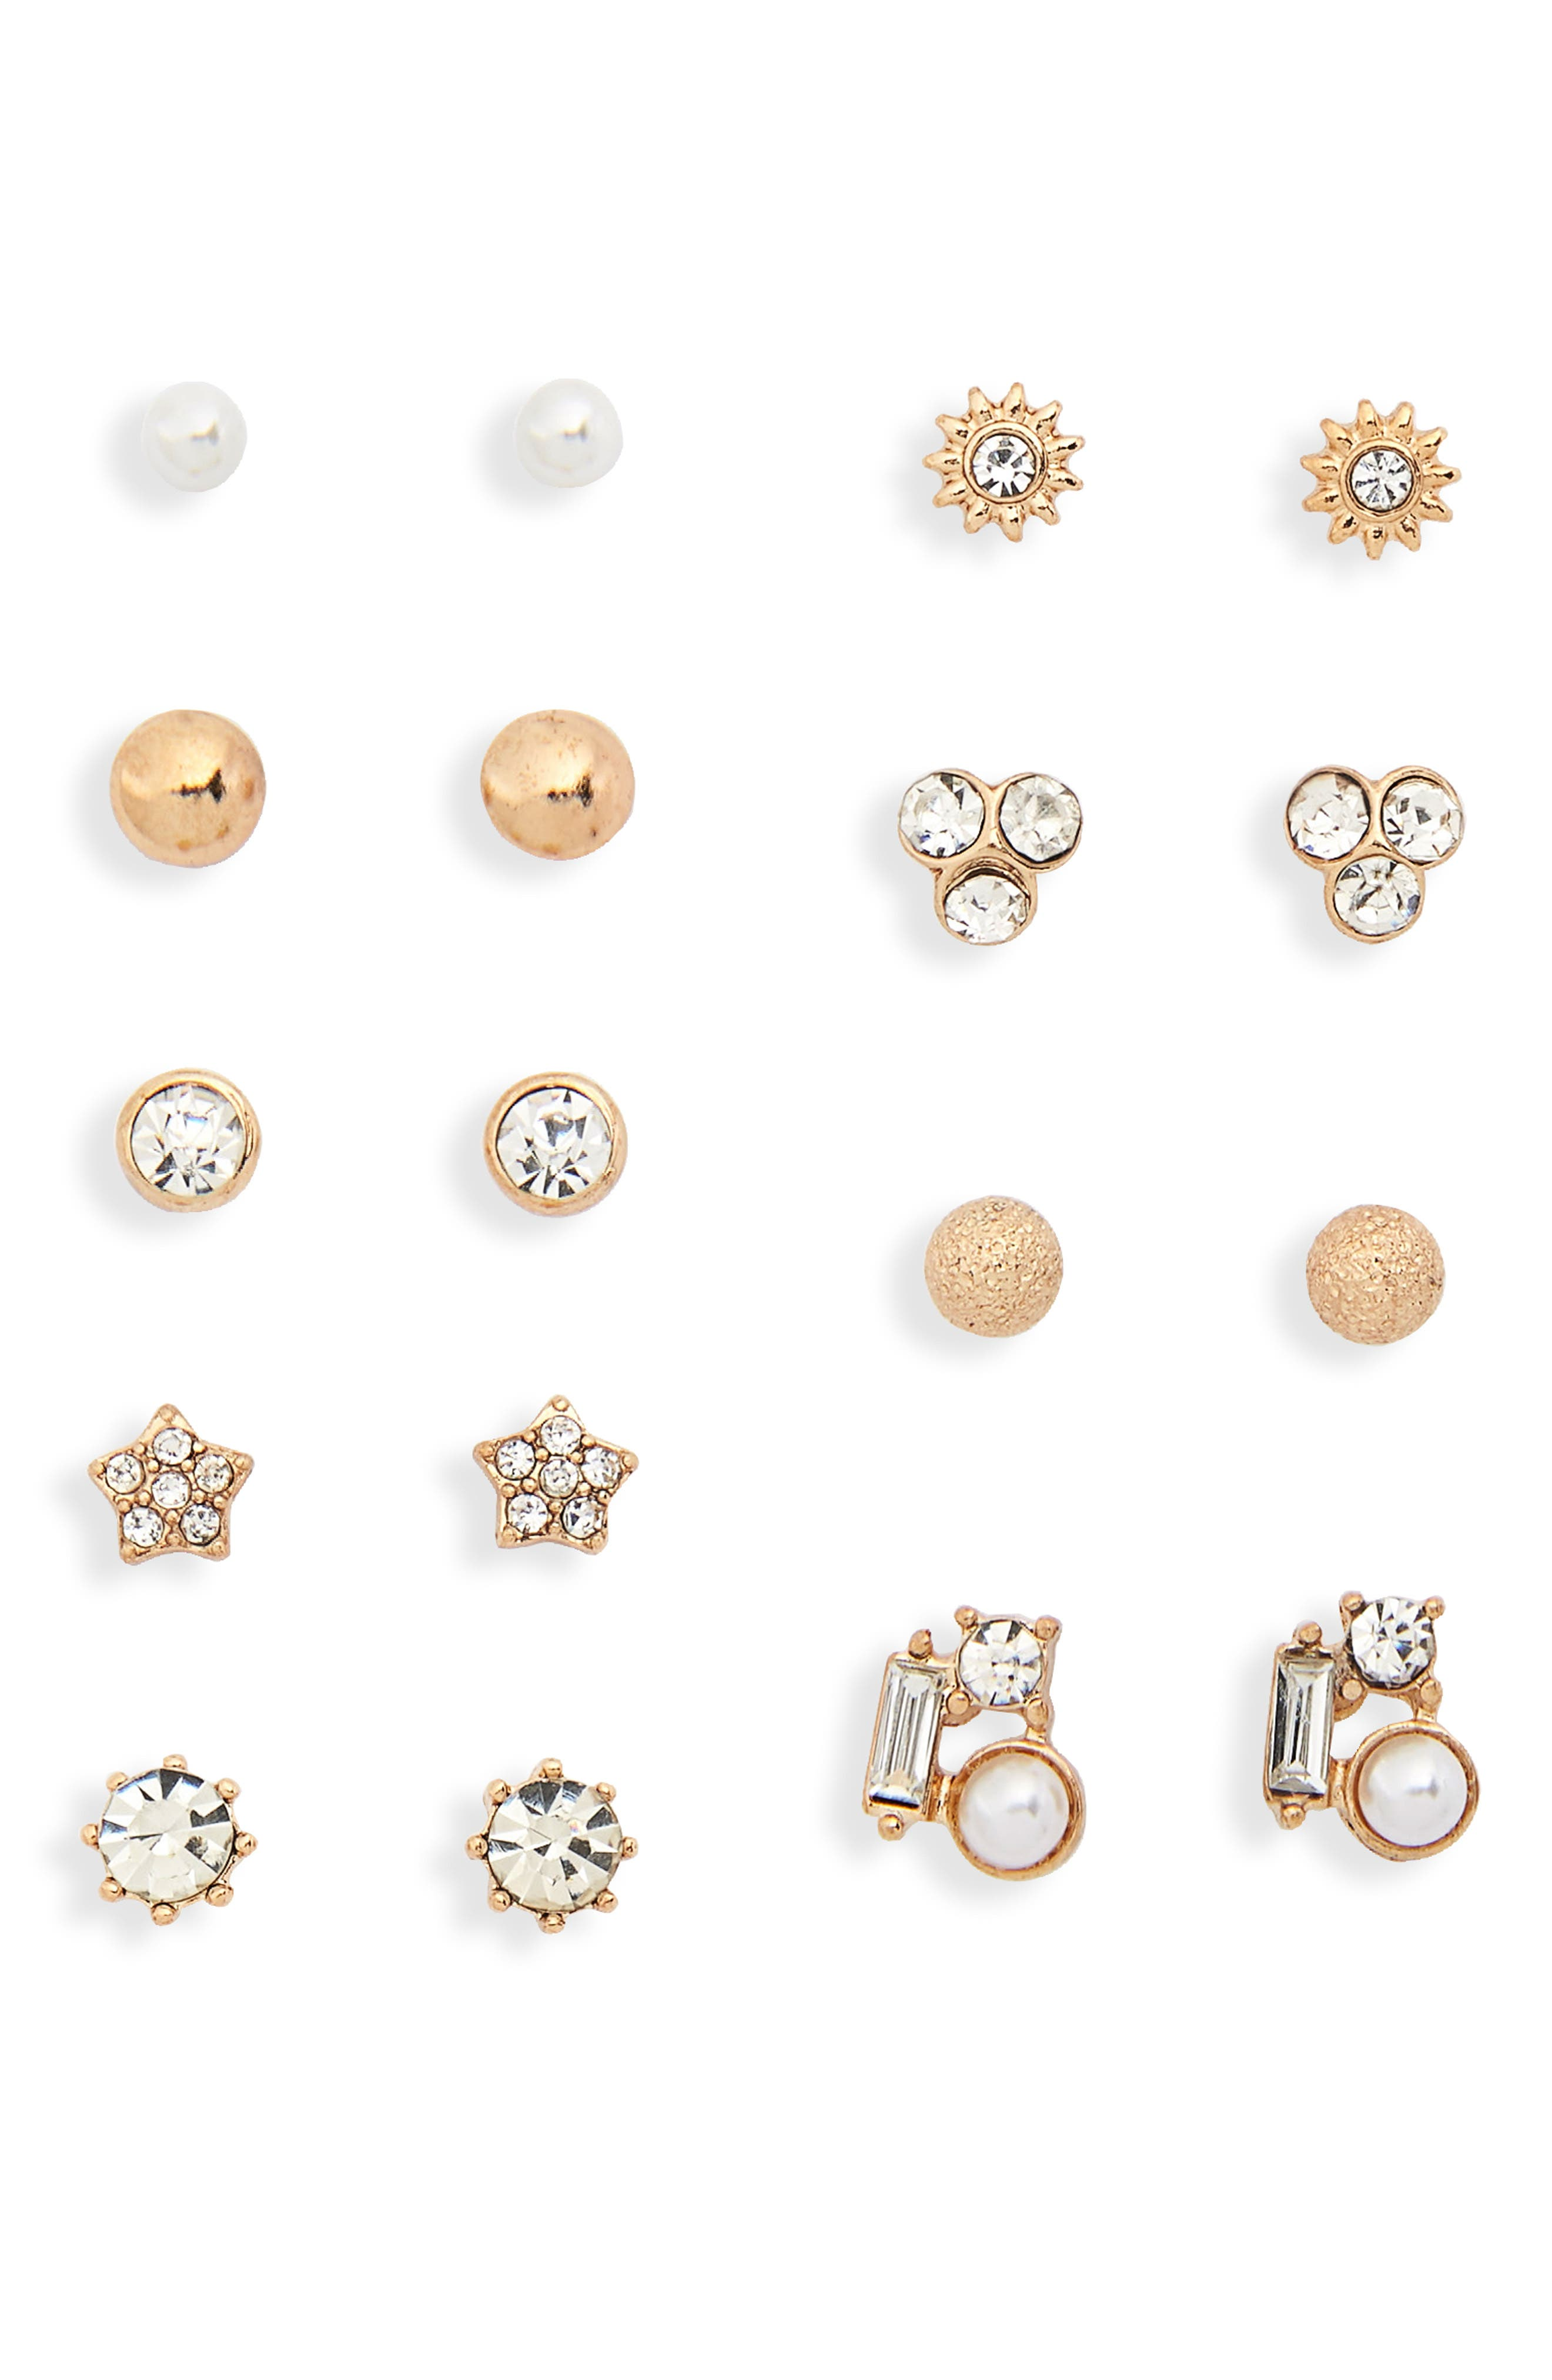 9-Pack Crystal Cluster Stud Earrings,                             Main thumbnail 1, color,                             Gold/ Crystal